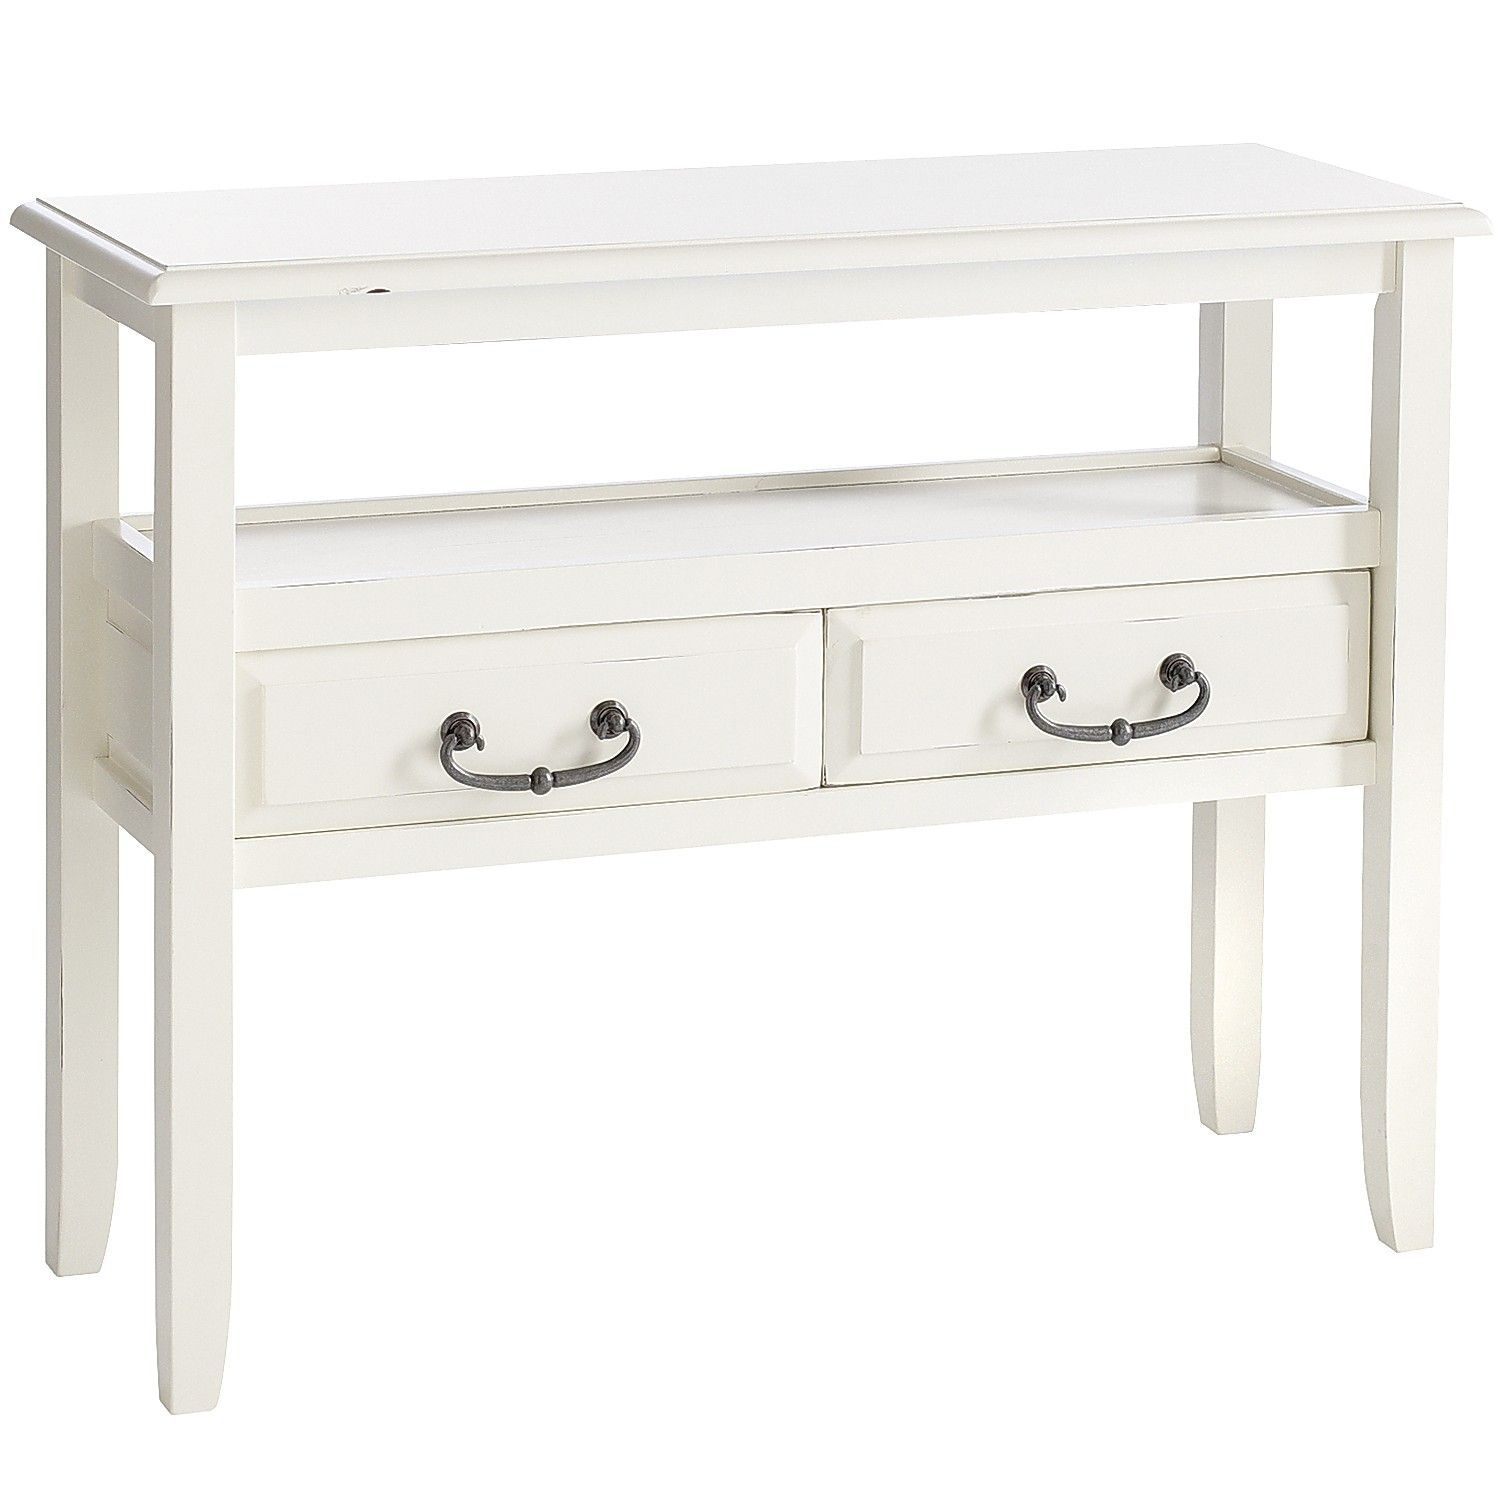 Anywhere Antique White Console Table With Pull Handles | Home Sweet Intended For Switch Console Tables (View 5 of 30)